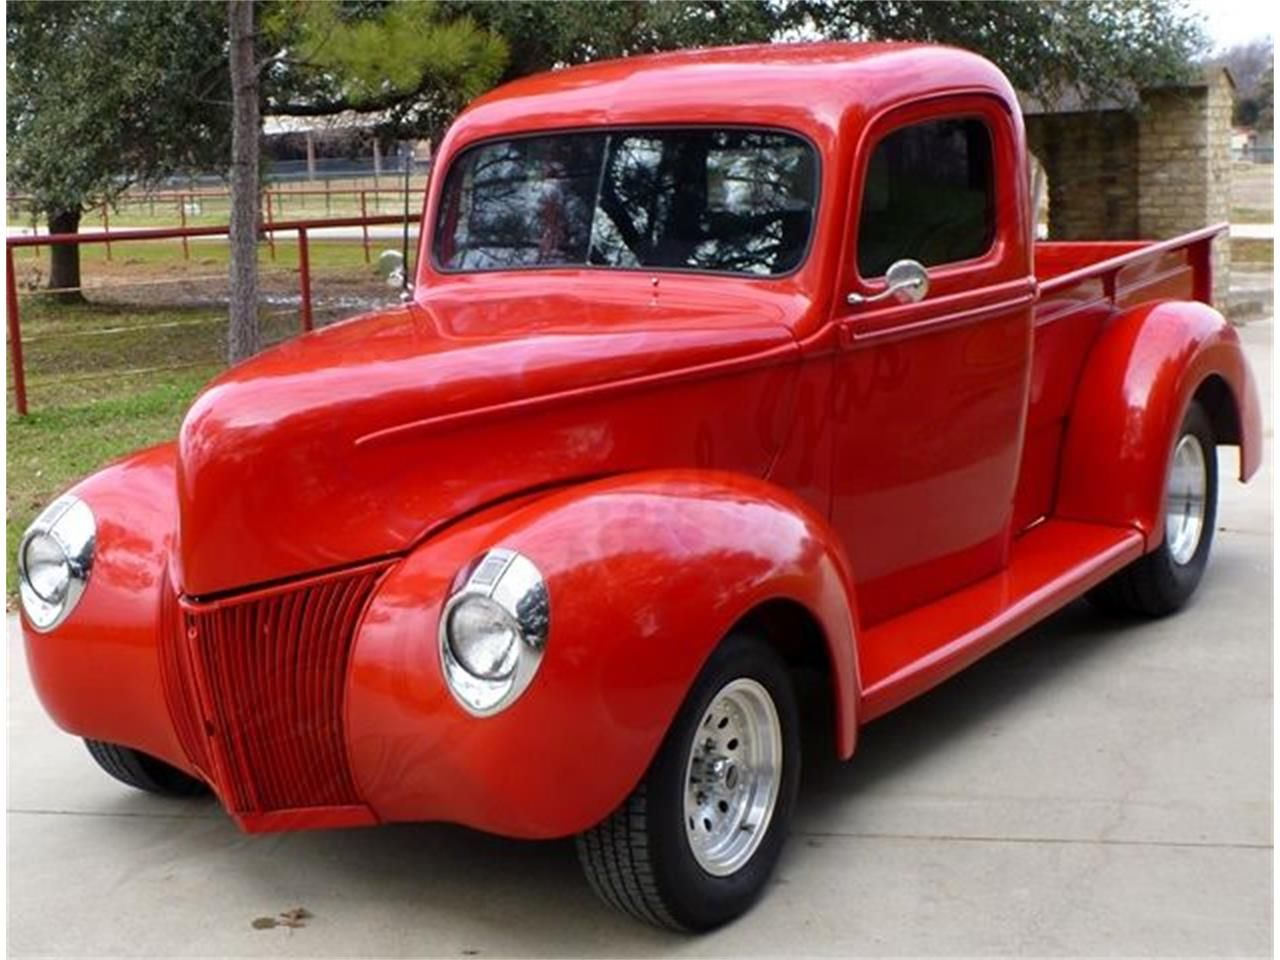 custom hot rod designs | 1940 Ford Pickup for Sale | ClassicCars.com ...